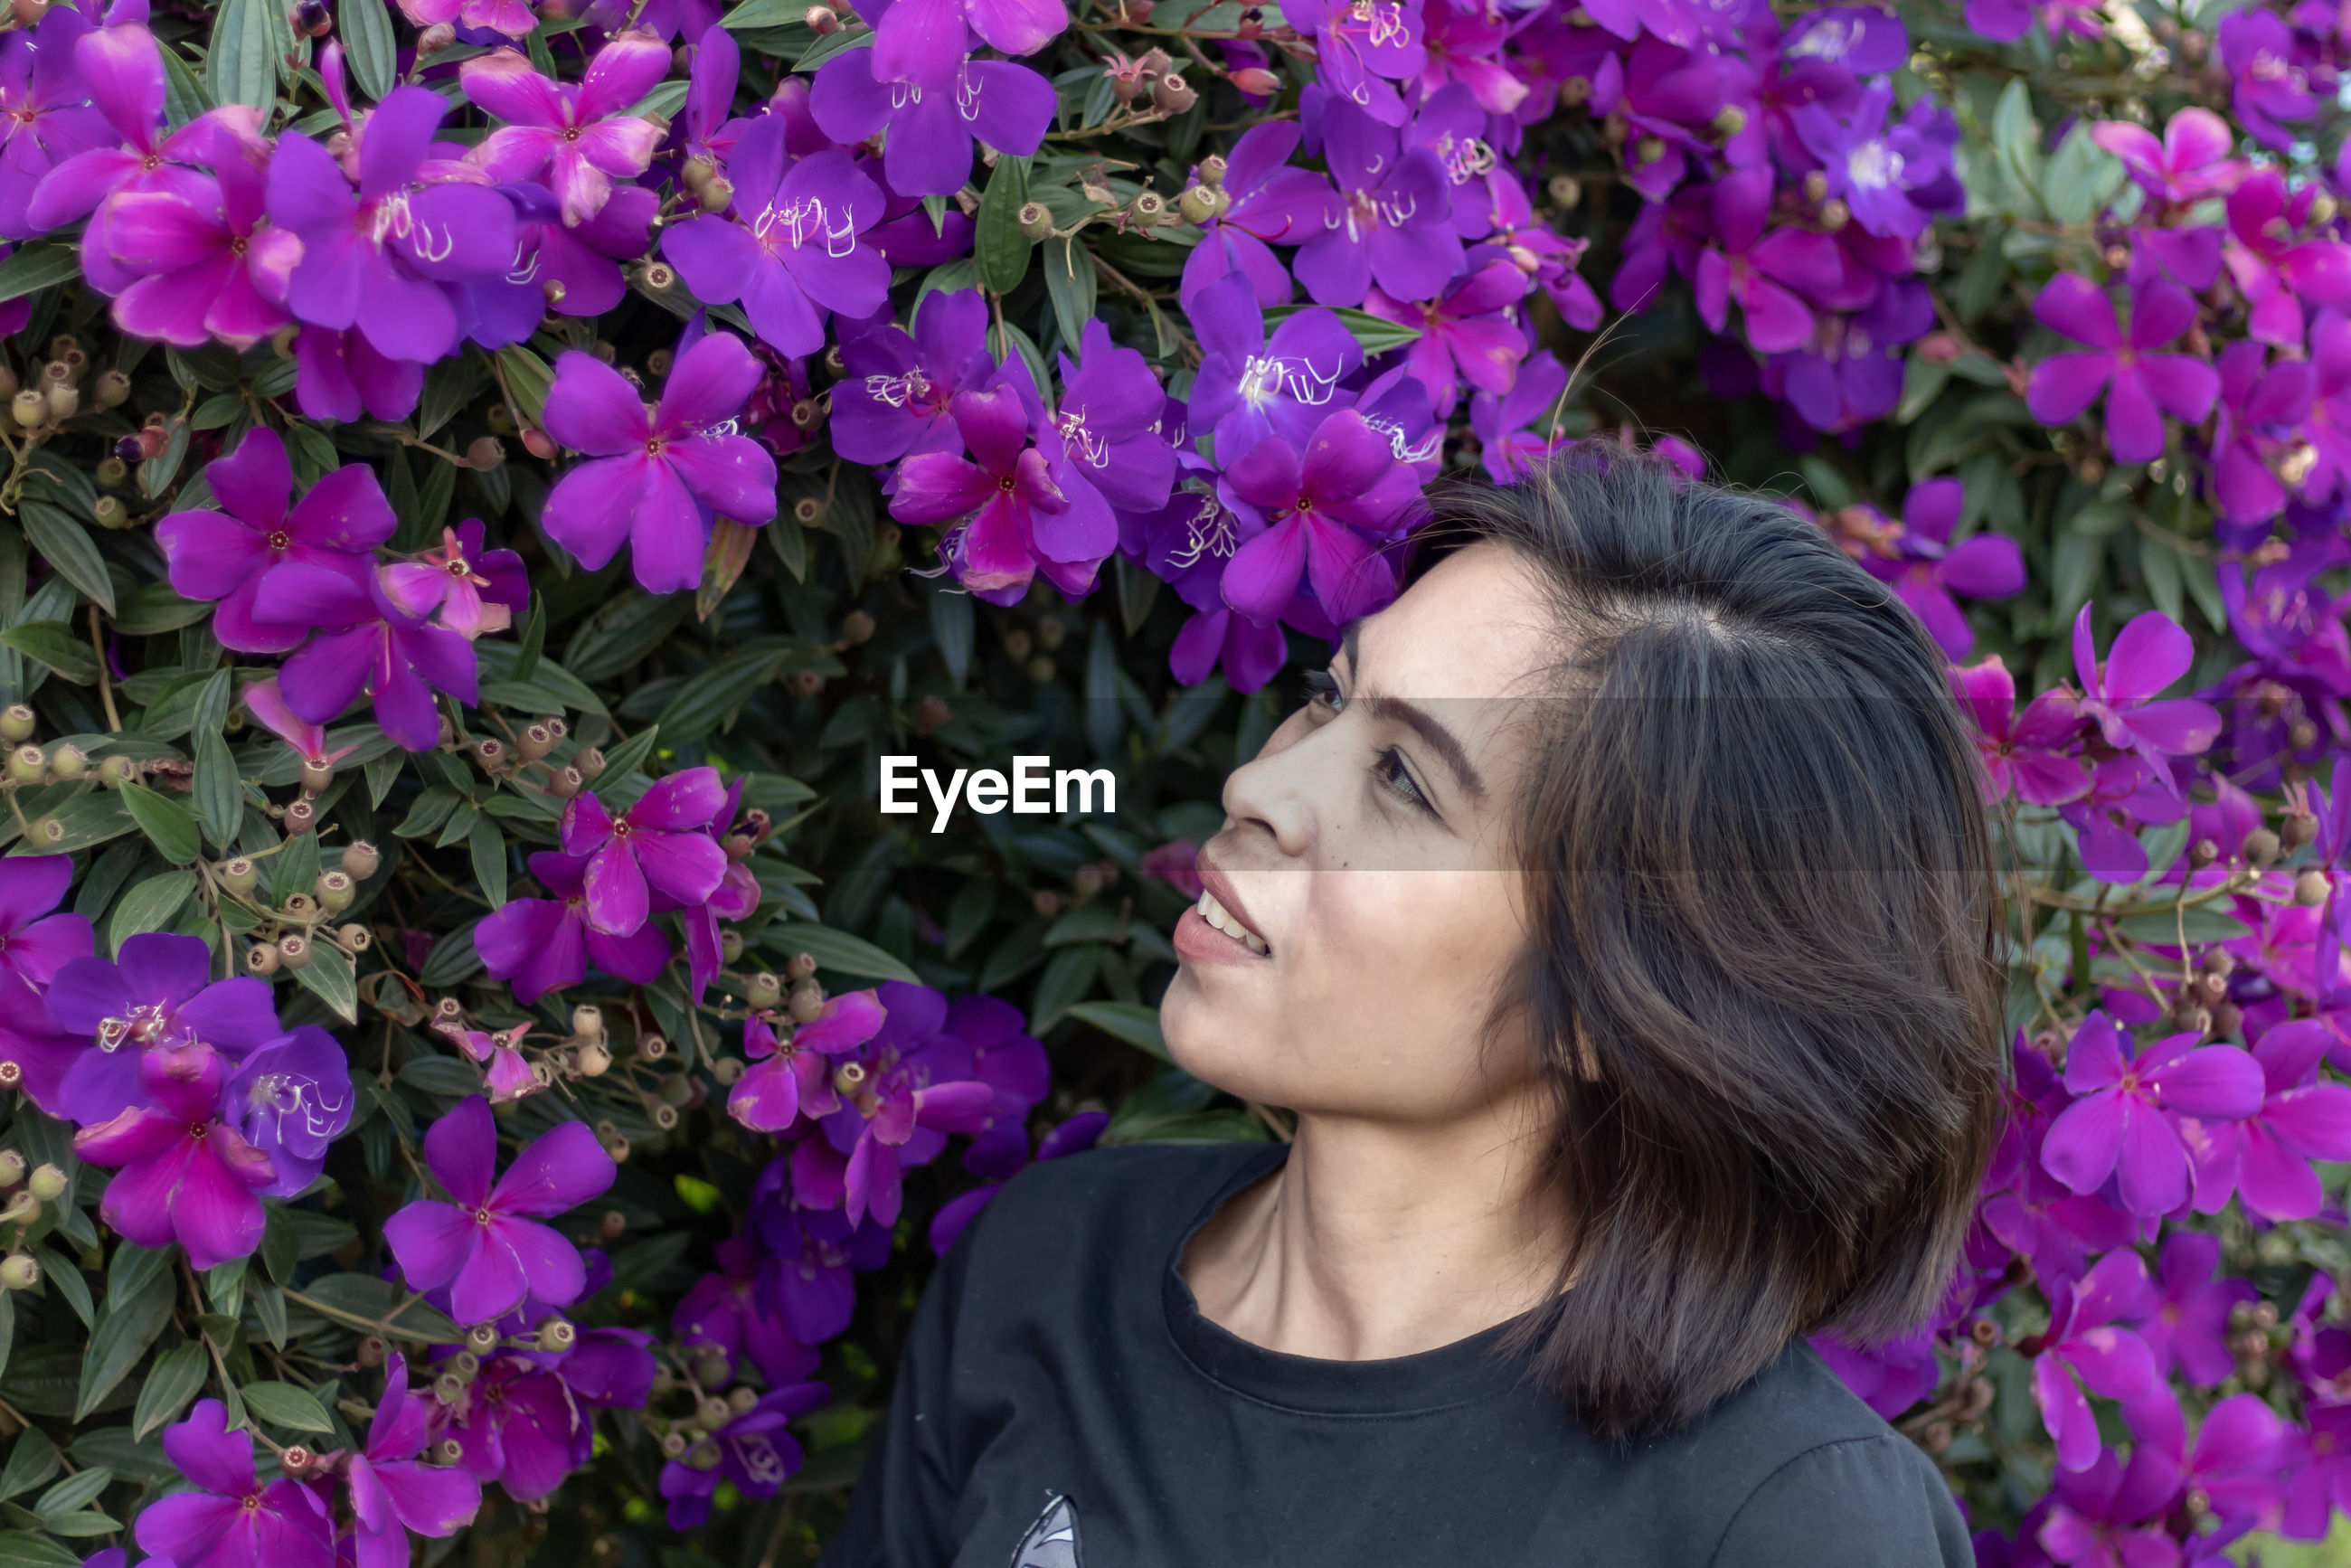 Close-up of woman looking at purple flowers